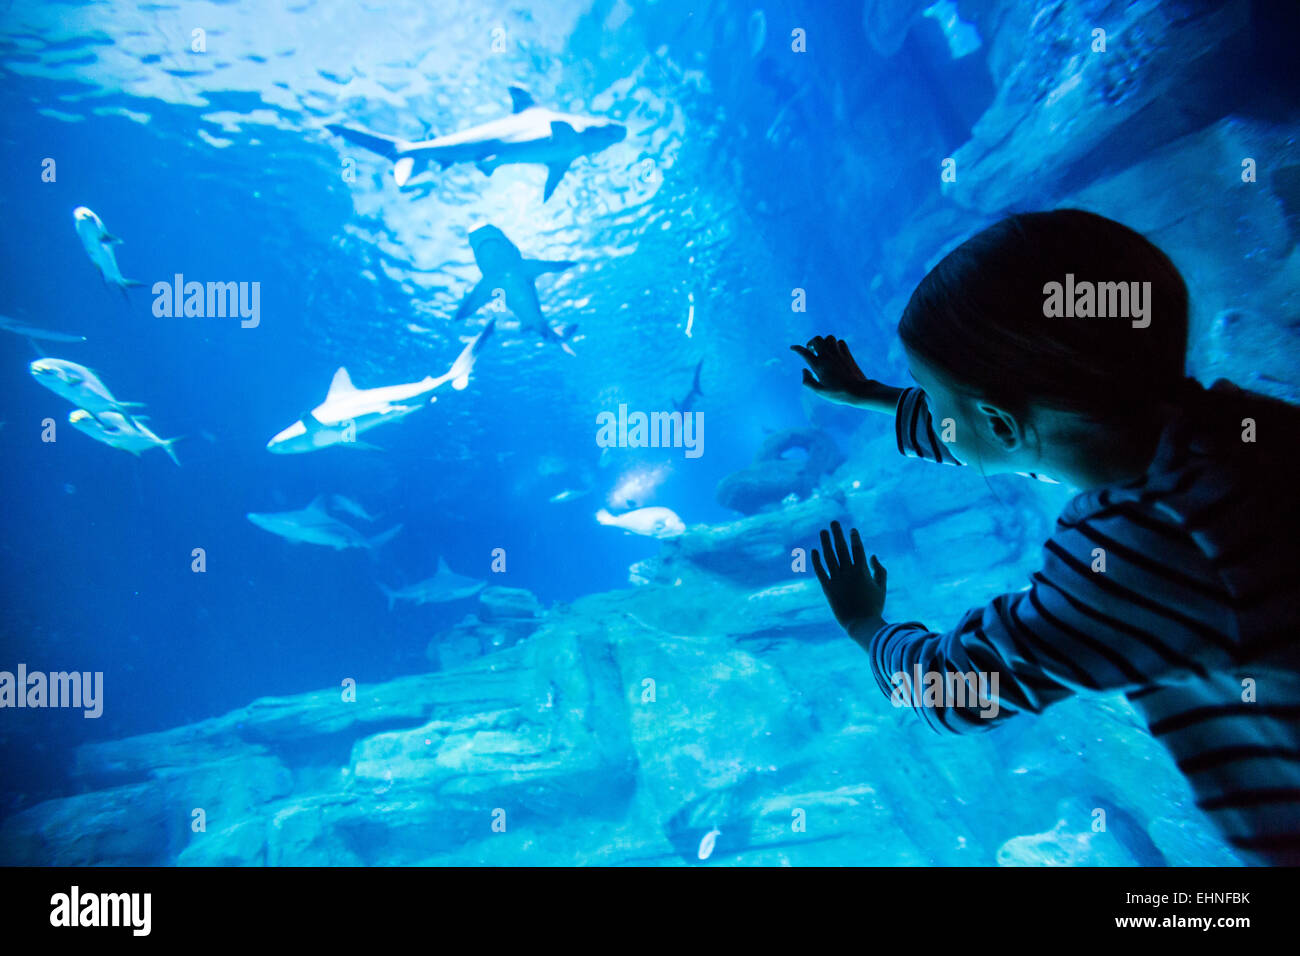 7 year-old girl watching fishes in an aquarium. - Stock Image